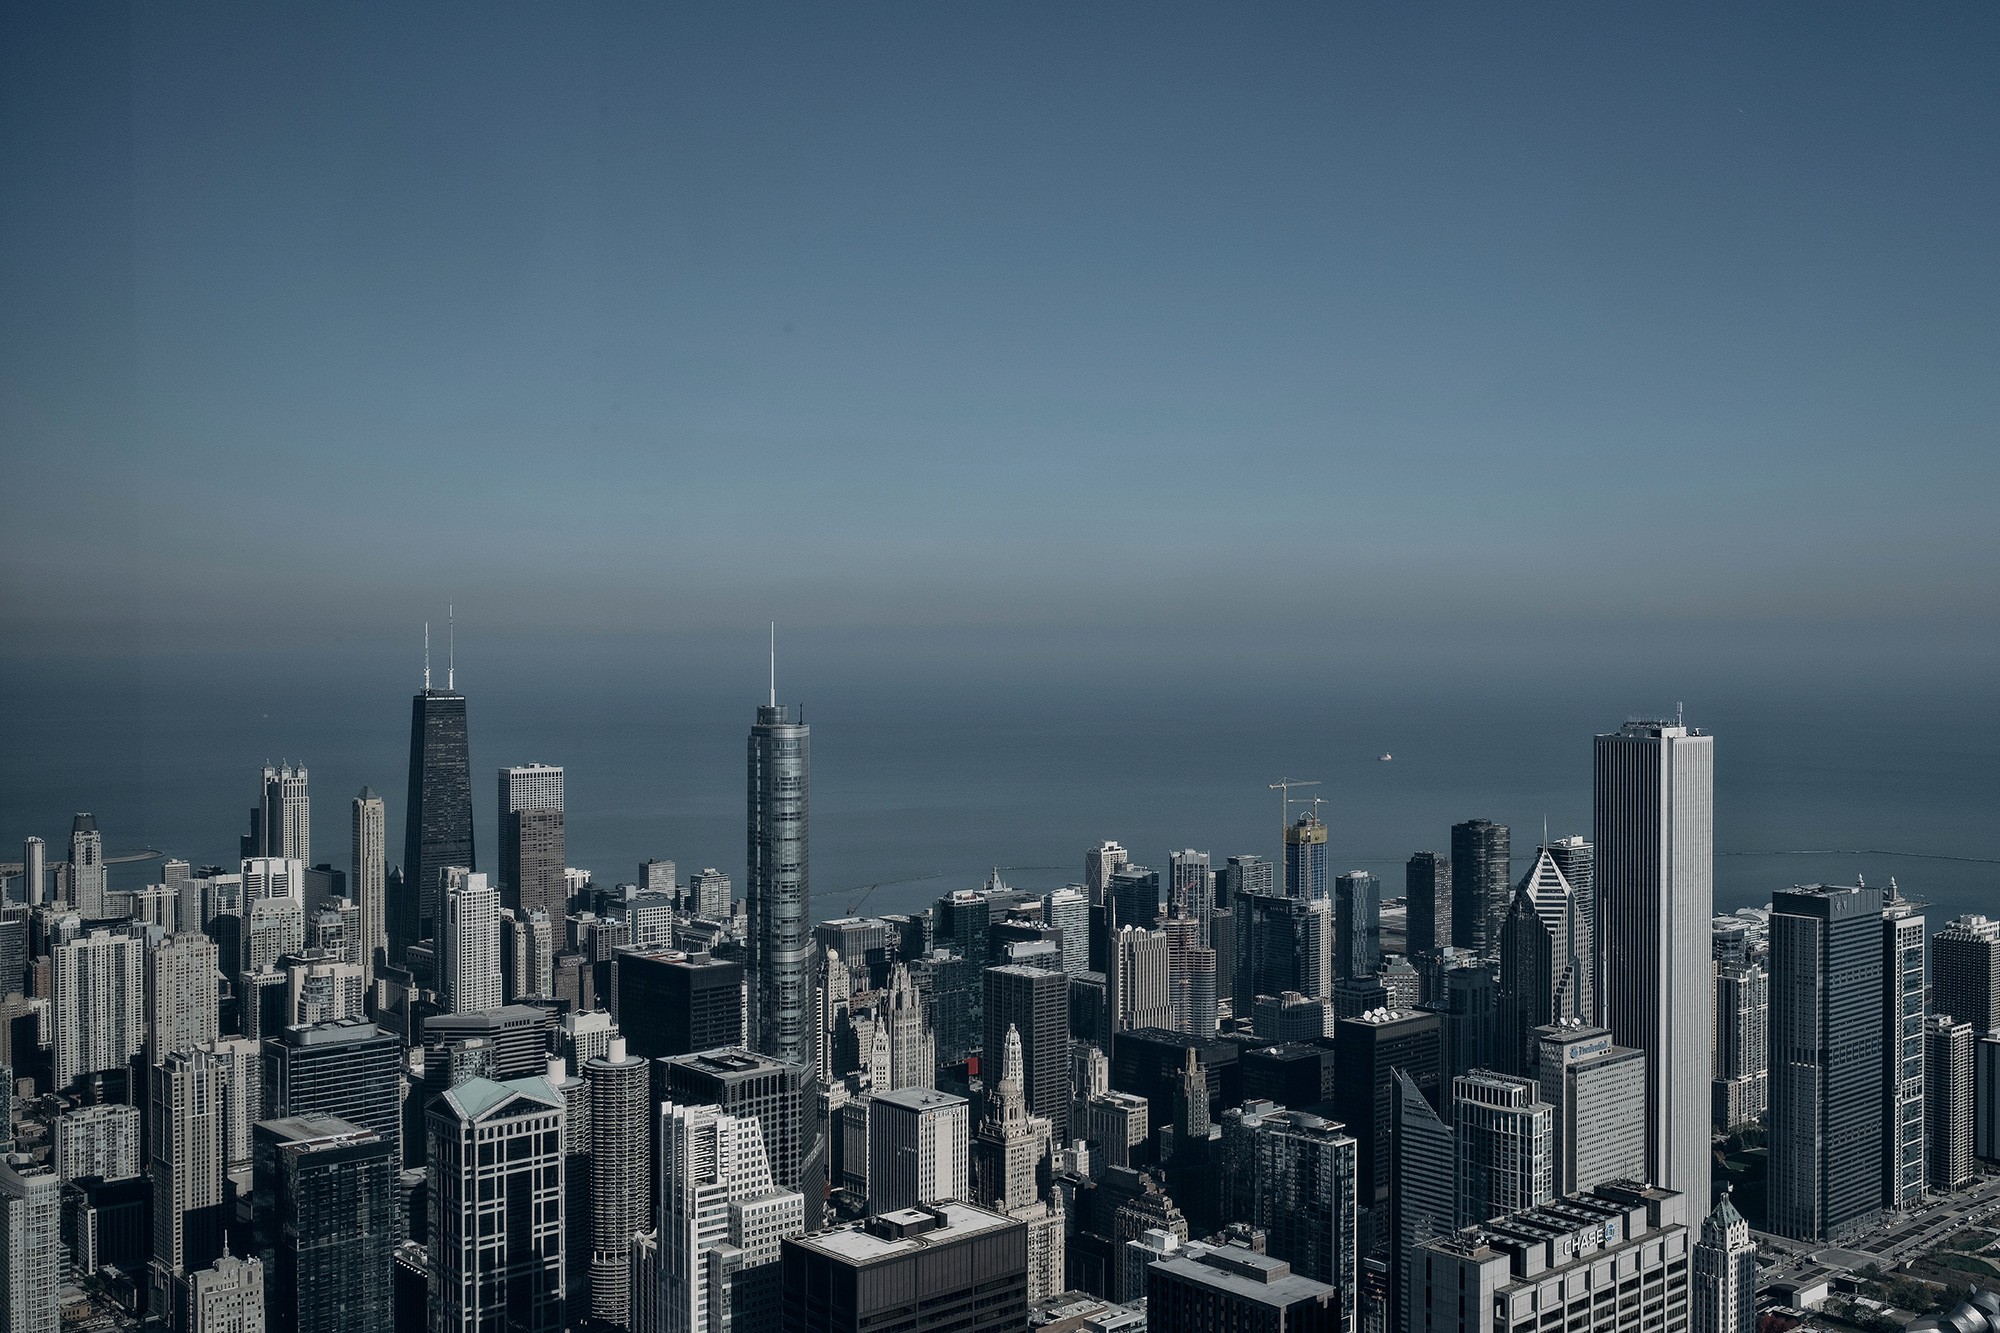 A view of the skyline of Chicago, Illinois as taken from the Sears Tower in downtown Chicago by photographer, Todd Spoth.